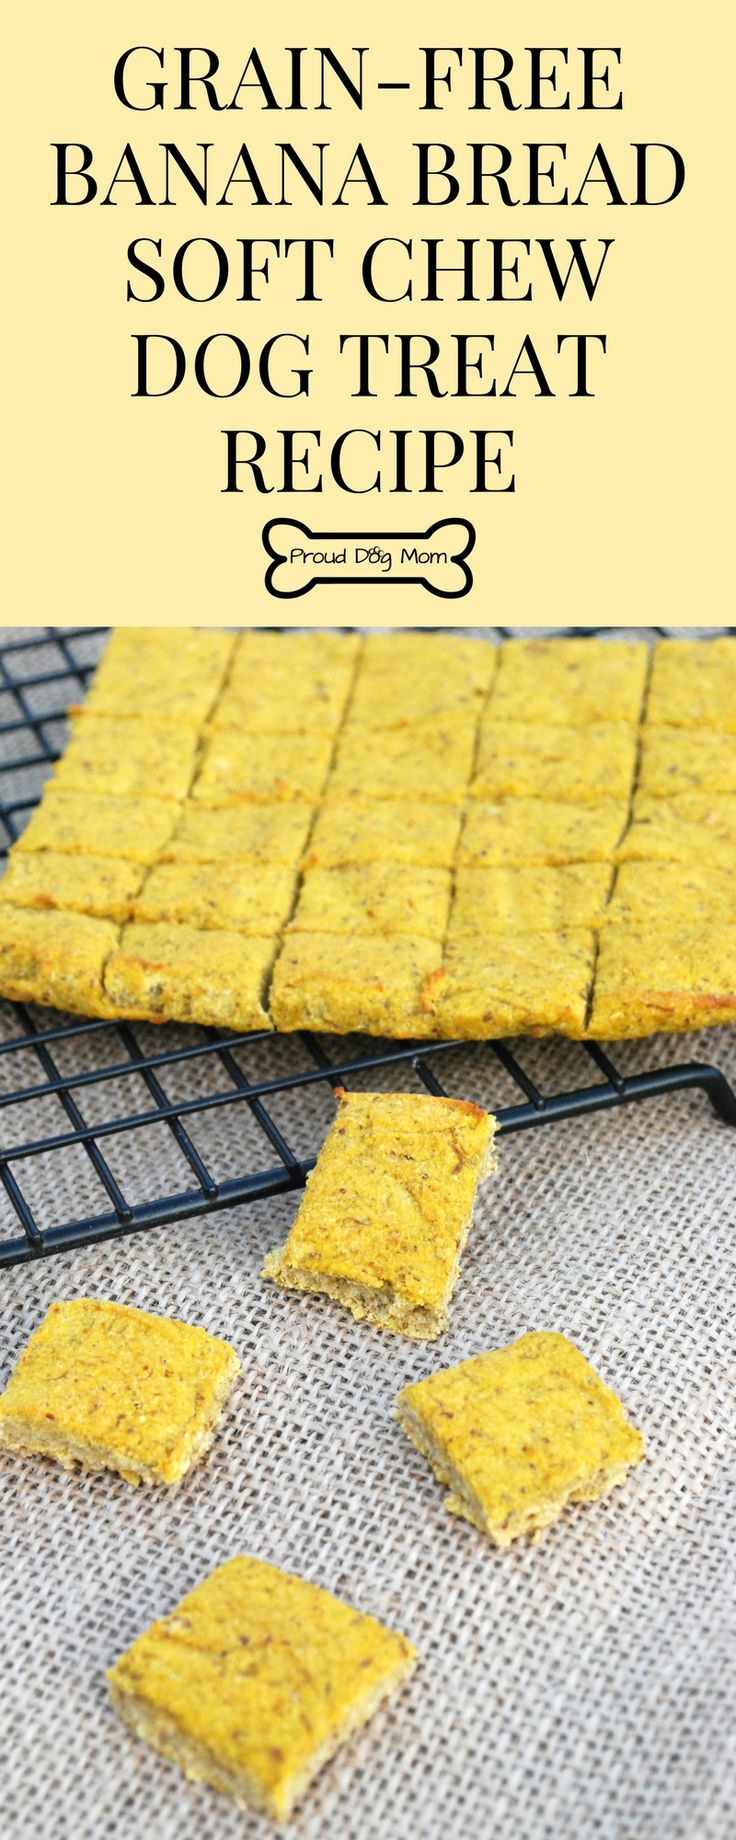 Banana Bread Soft Chew Dog Treat Recipe | Grain-Free Dog Treats | DIY Dog Treat Recipe | Homemade Dog Treats |